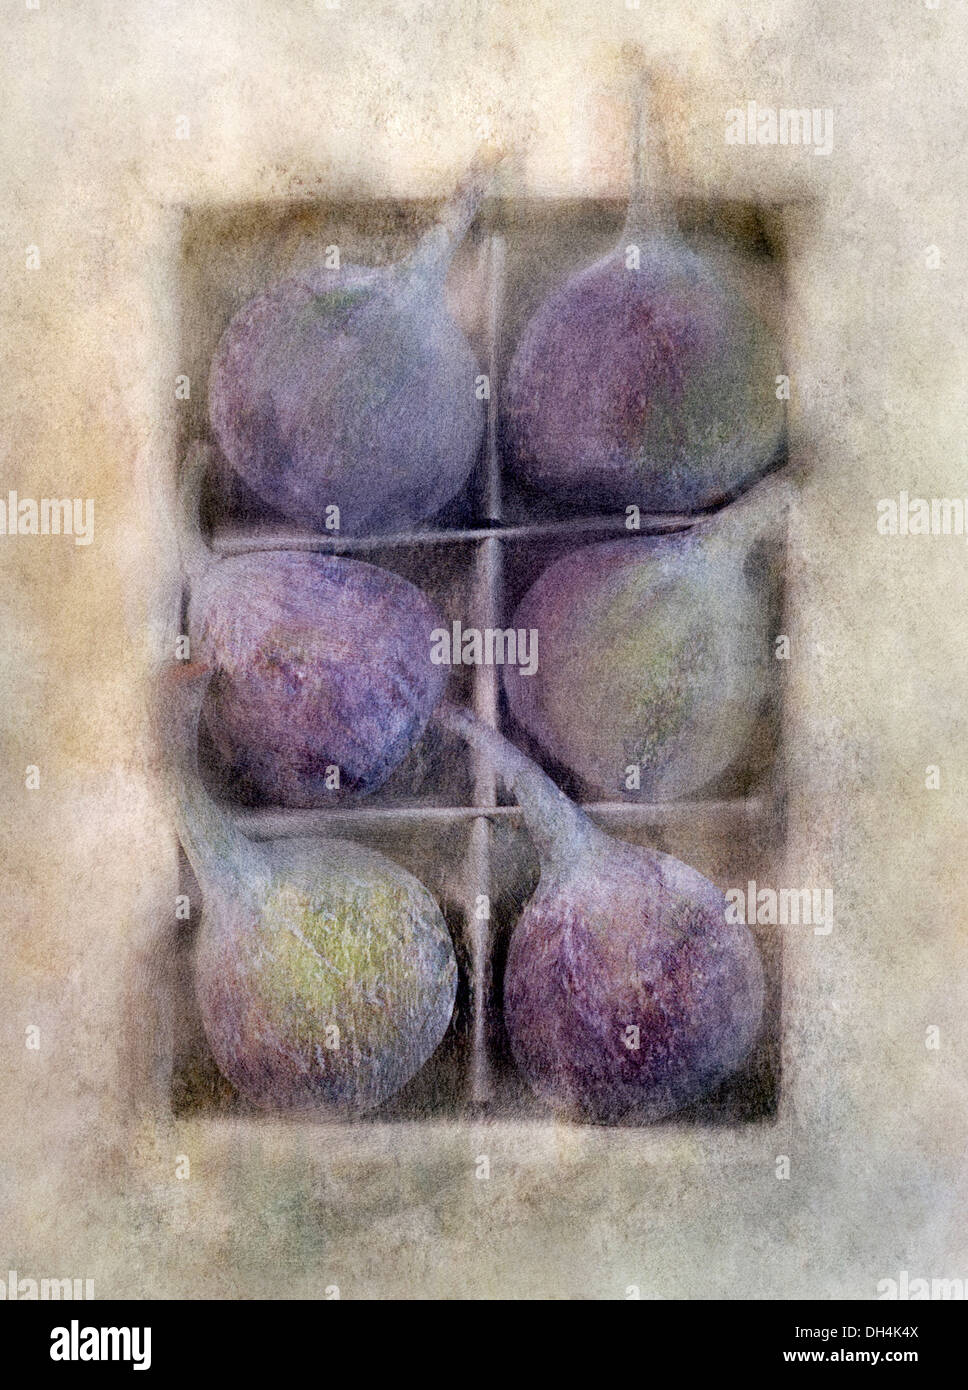 Fig Ficus carica. Digitally manipulated image of box of six figs against softened muted background creating illustration effect. - Stock Image